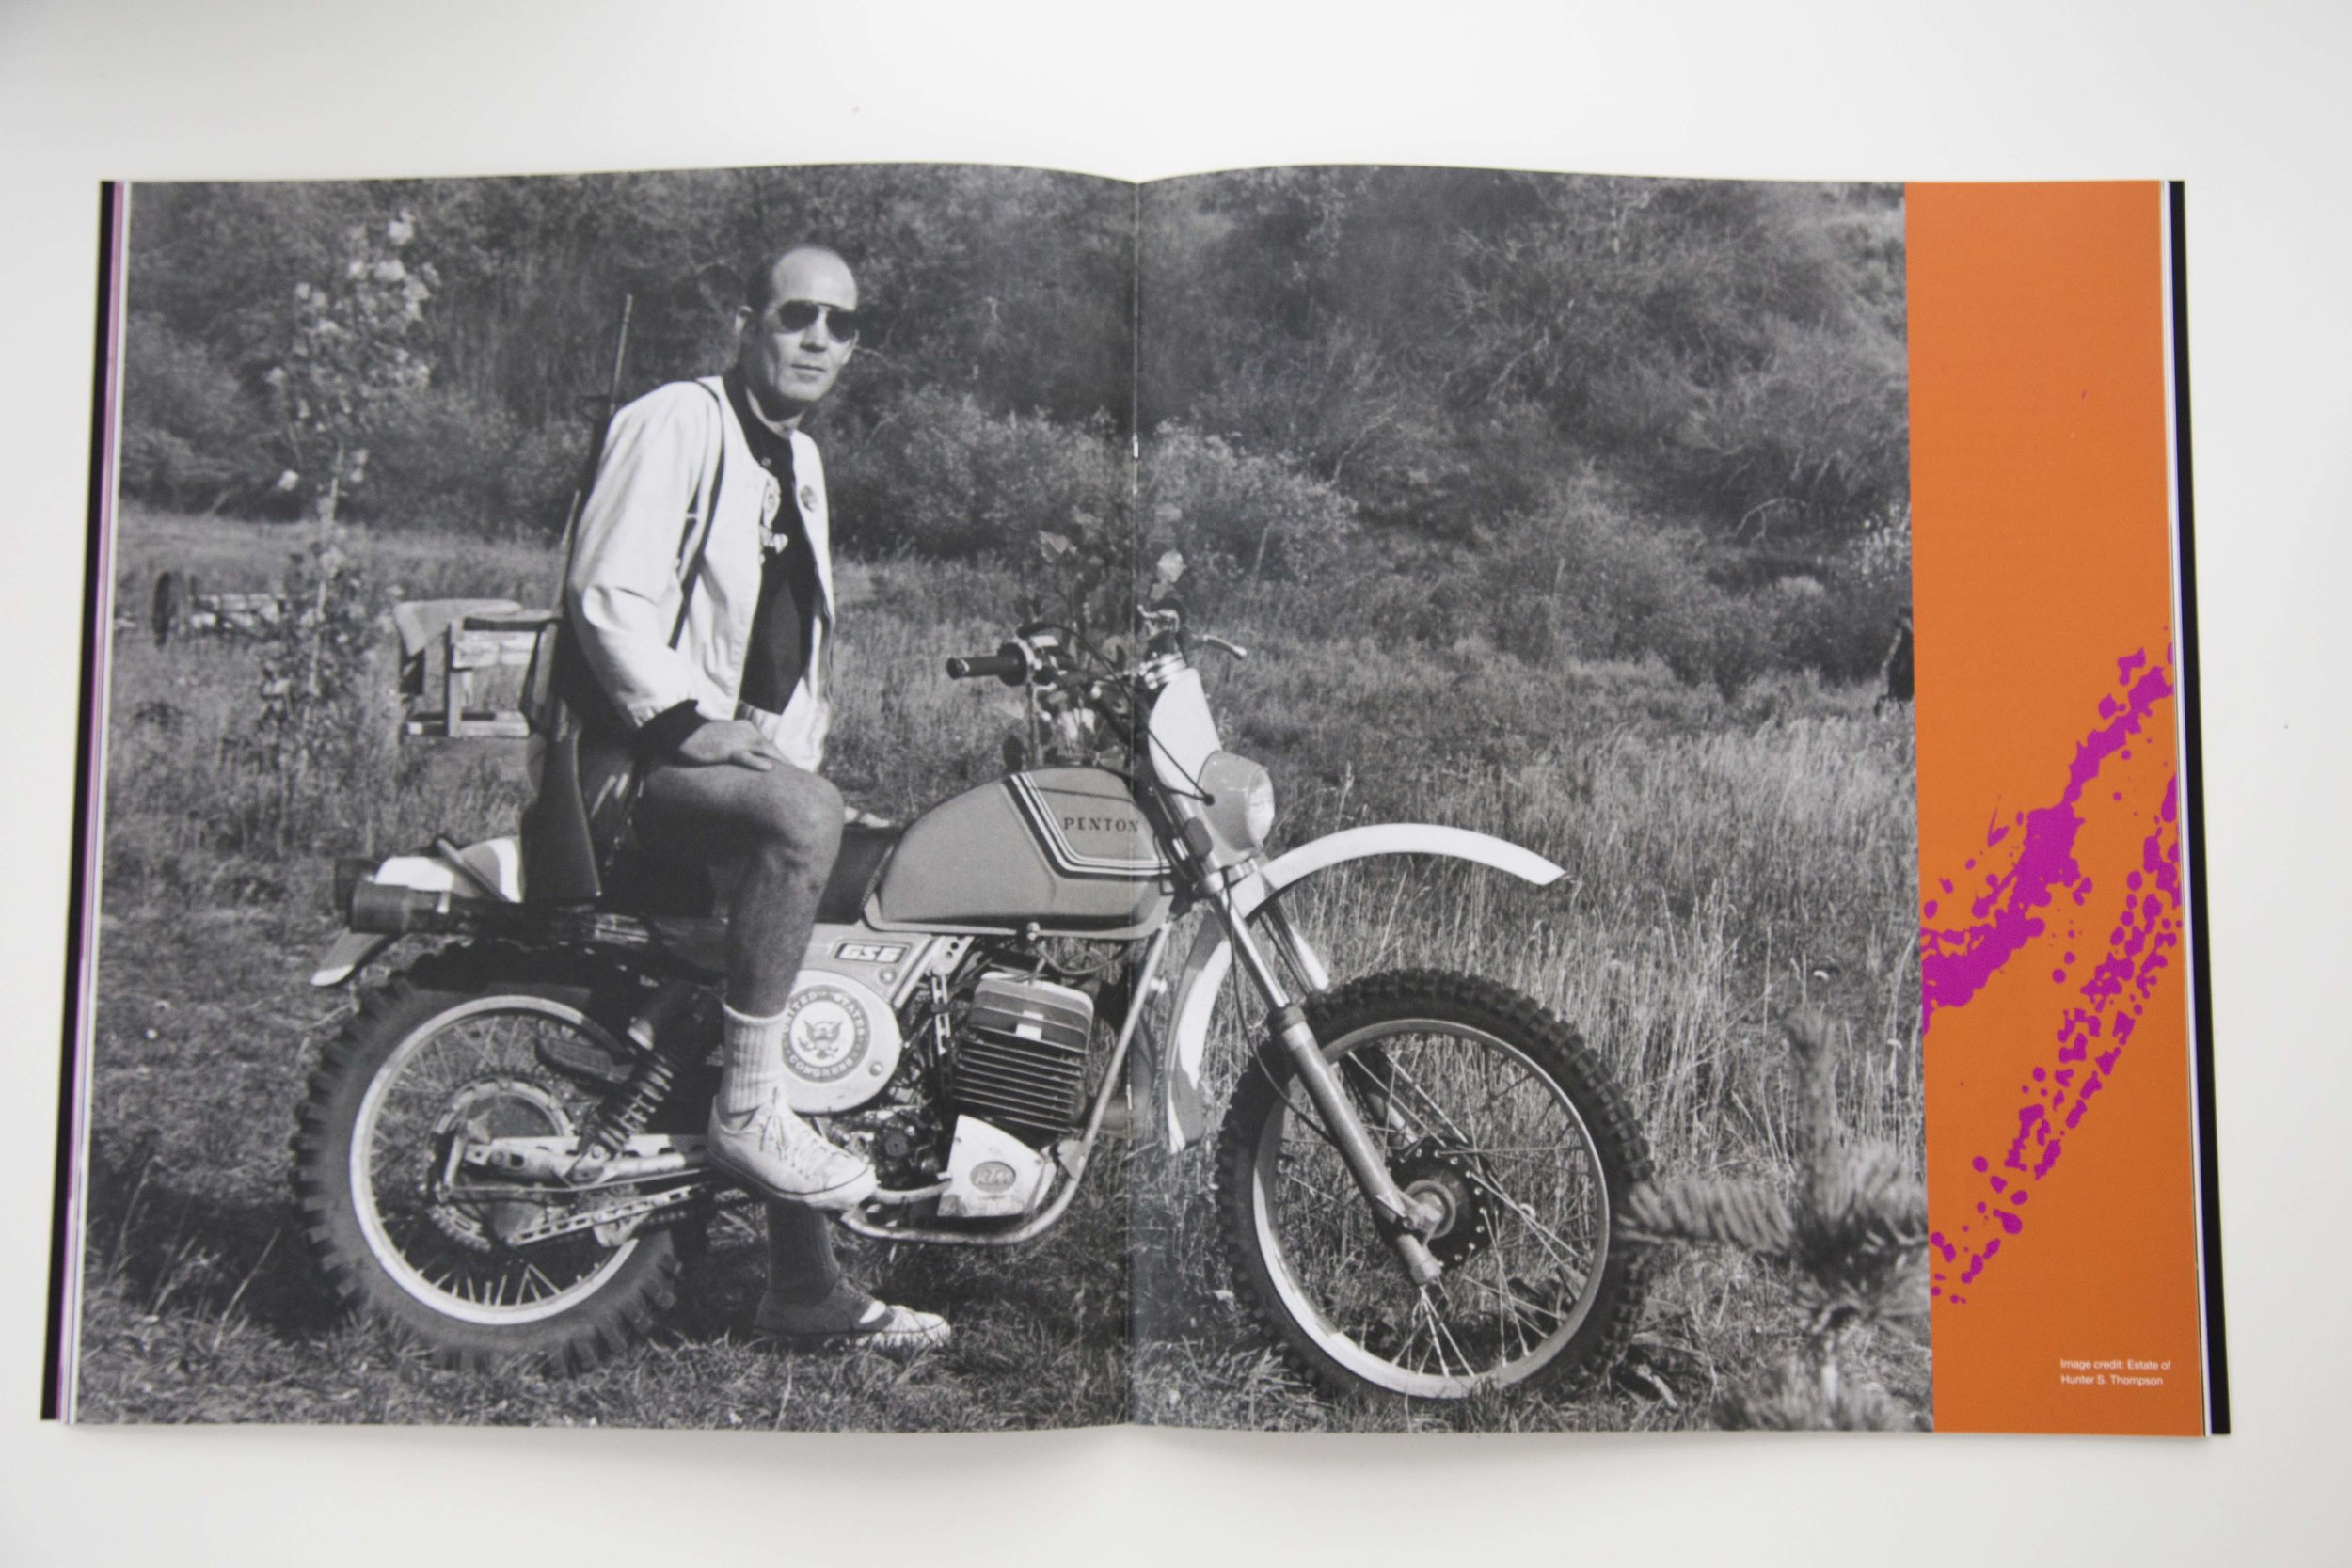 The full bleed center fold image of Hunter S. Thompson on a motorcycle nods to the magazine inspiration of the book.